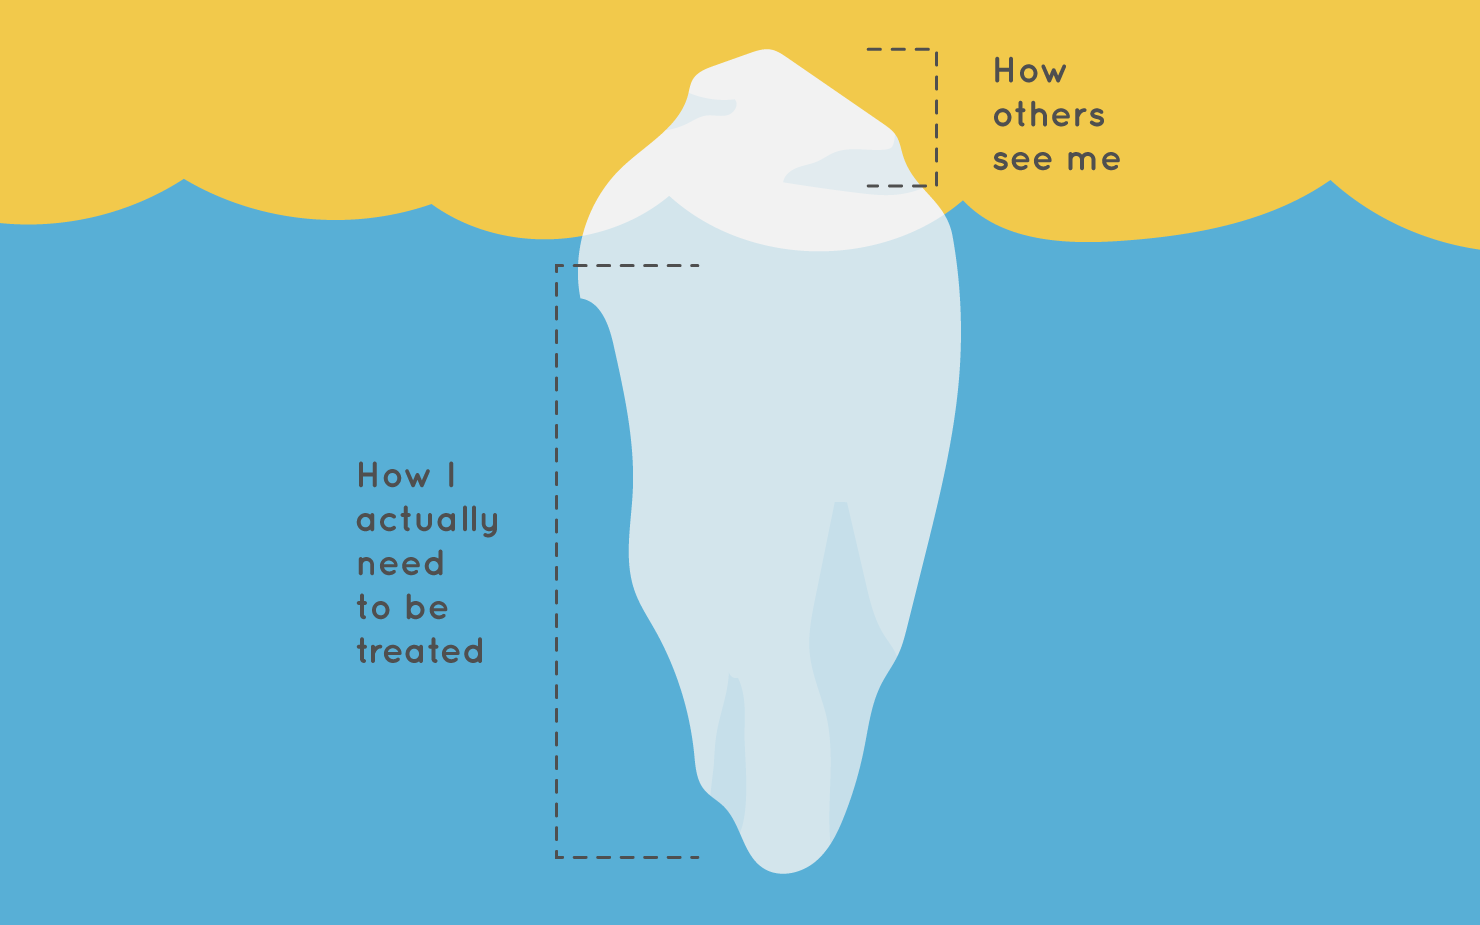 Tip of the iceberg = how others see me; beneath the surface = how I actually need to be treated;